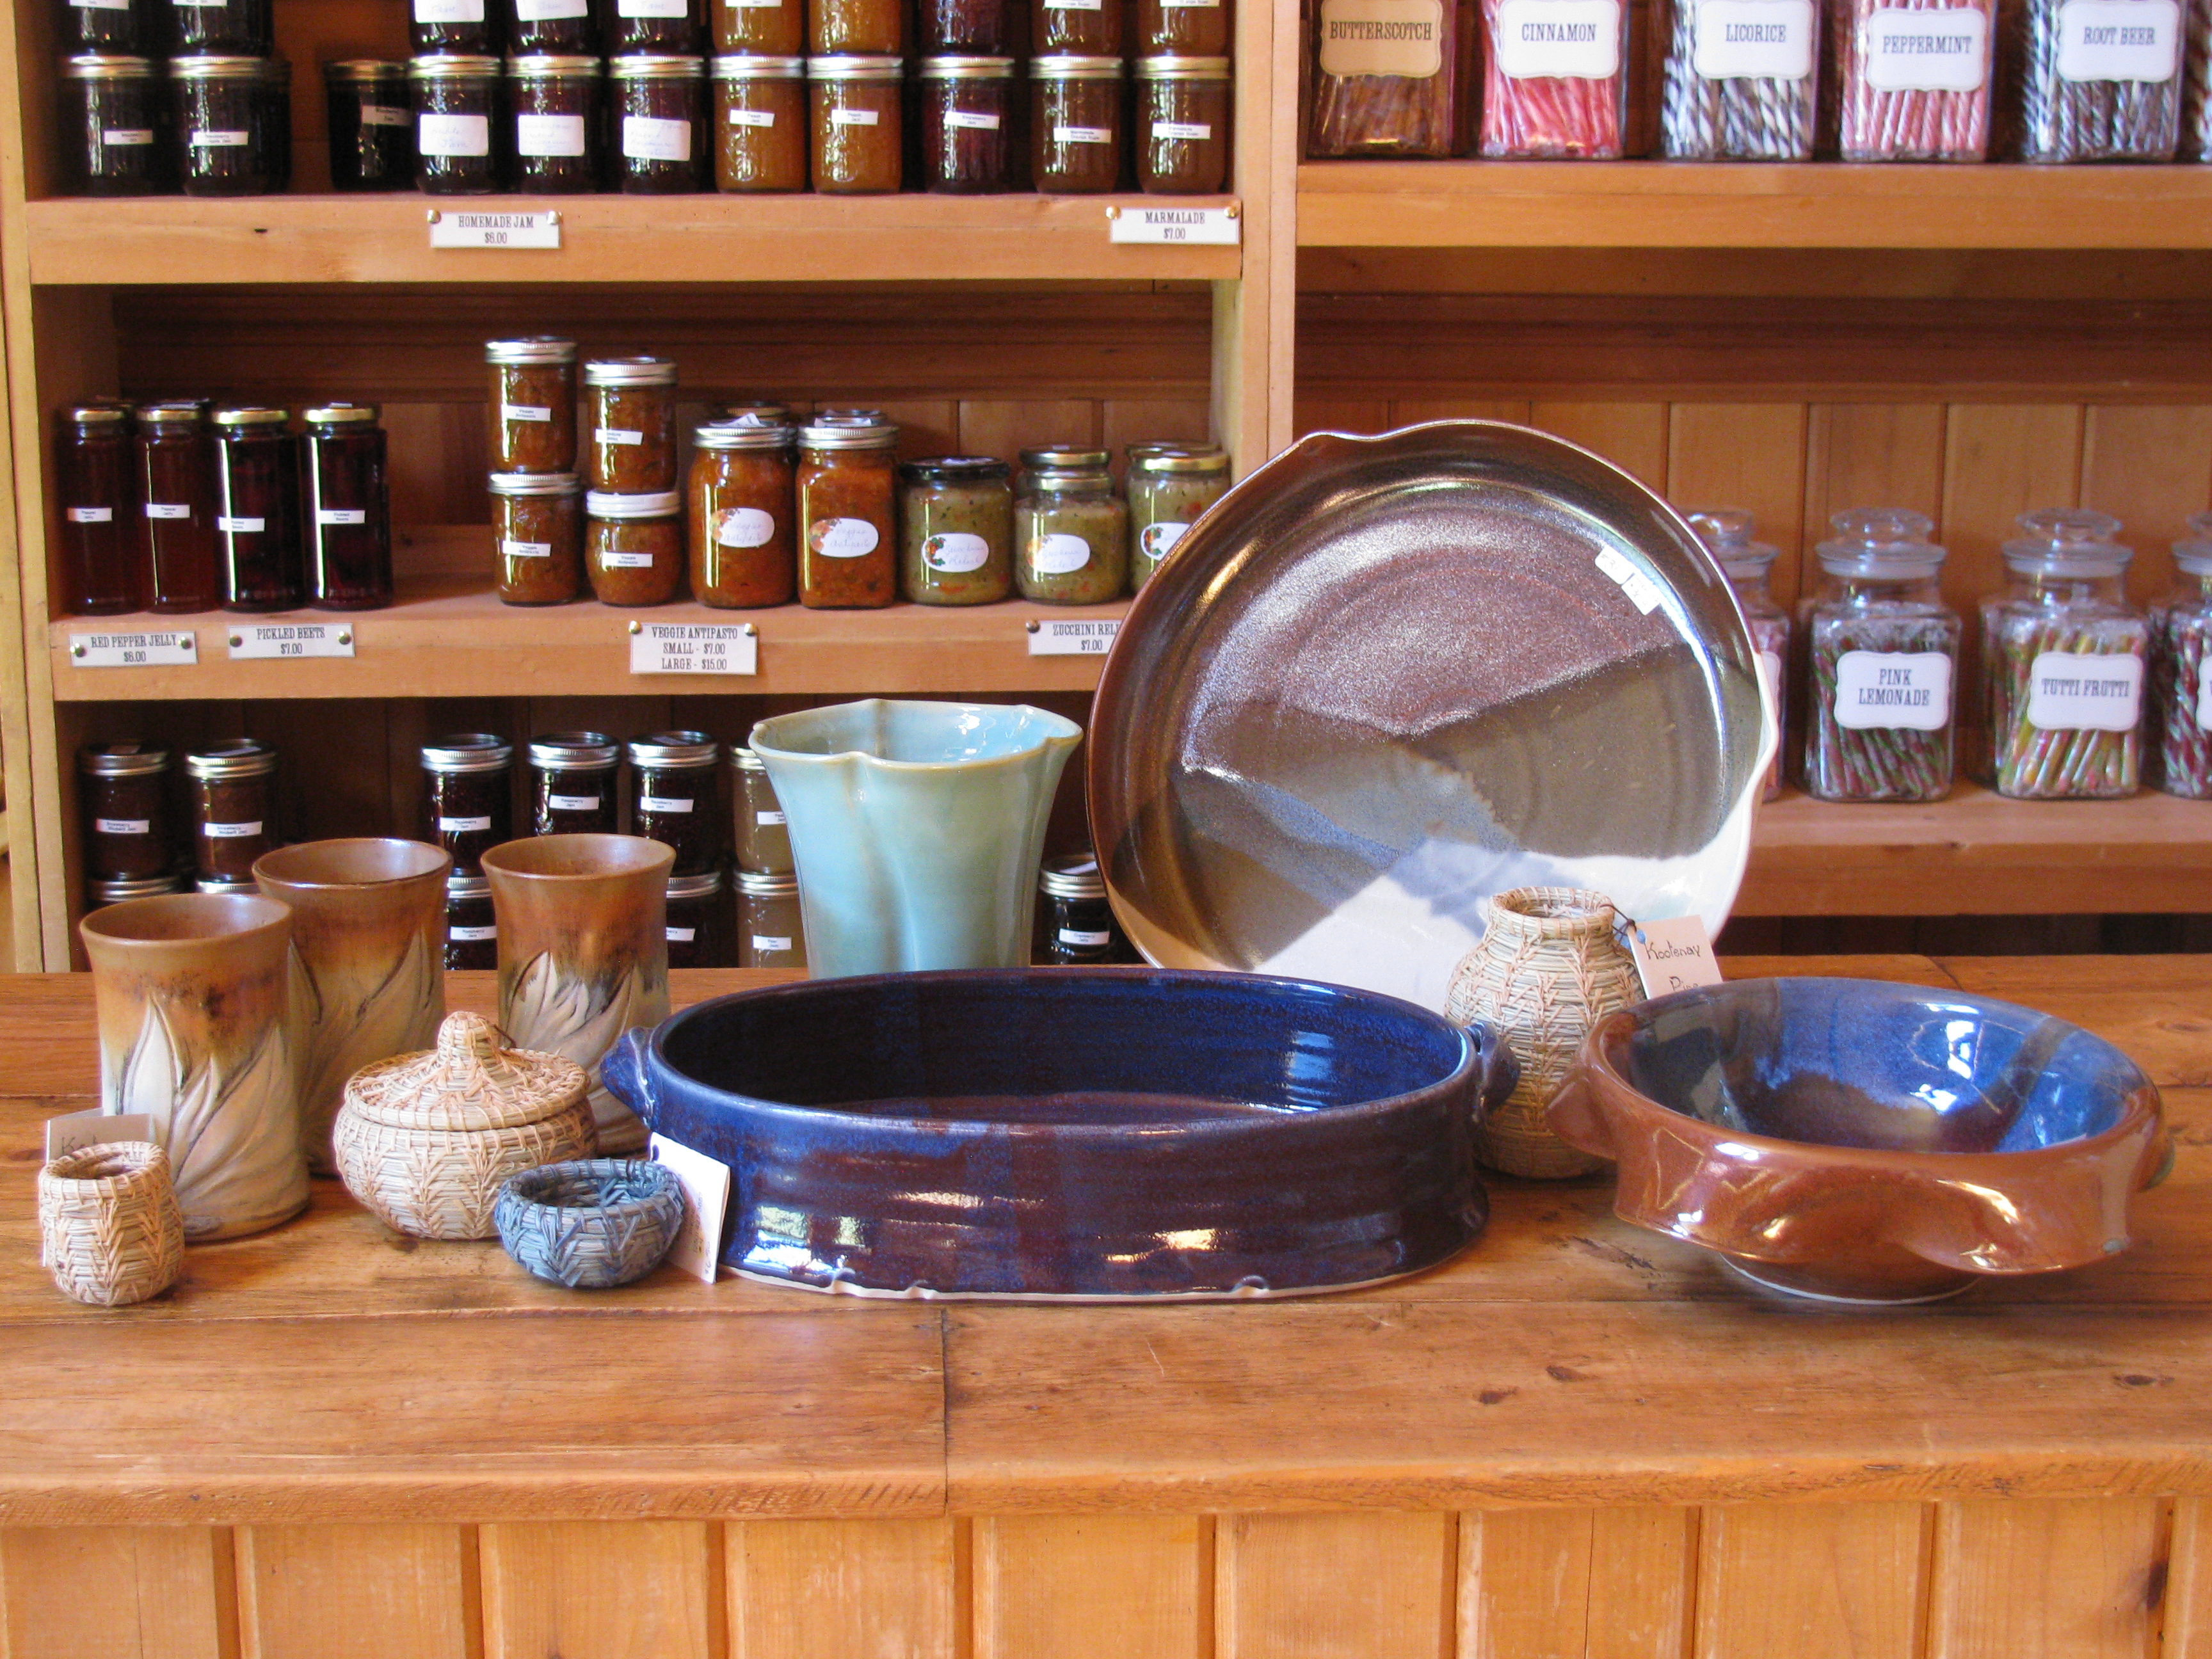 Locally made pottery.